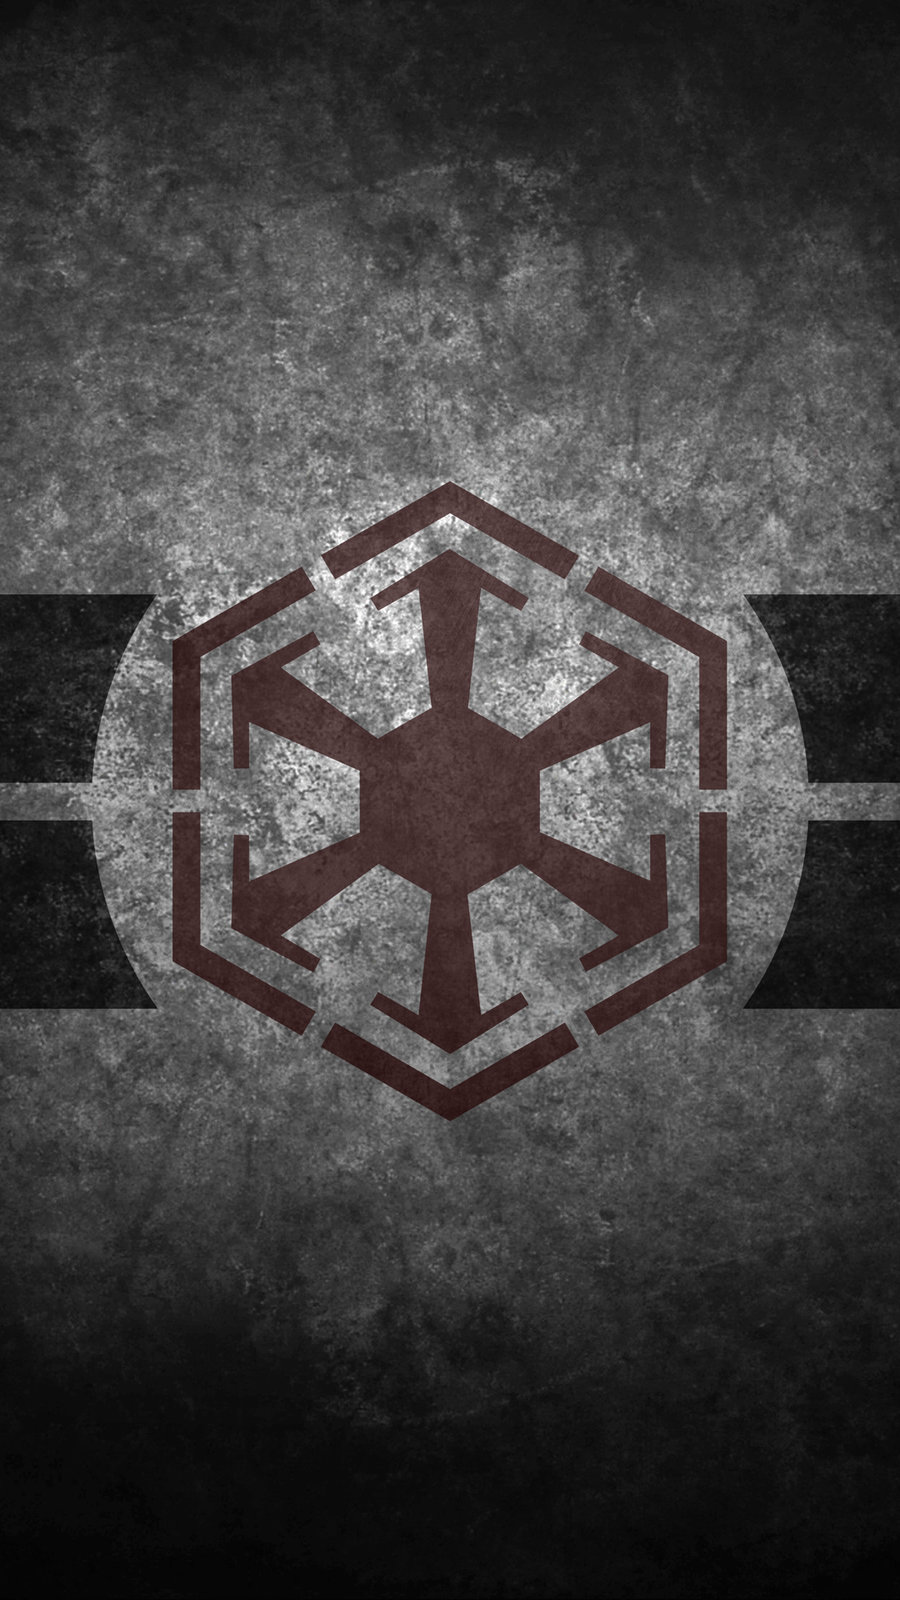 Star Wars Sith Empire Symbol Cellphone Wallpaper by swmand4 on 900x1600